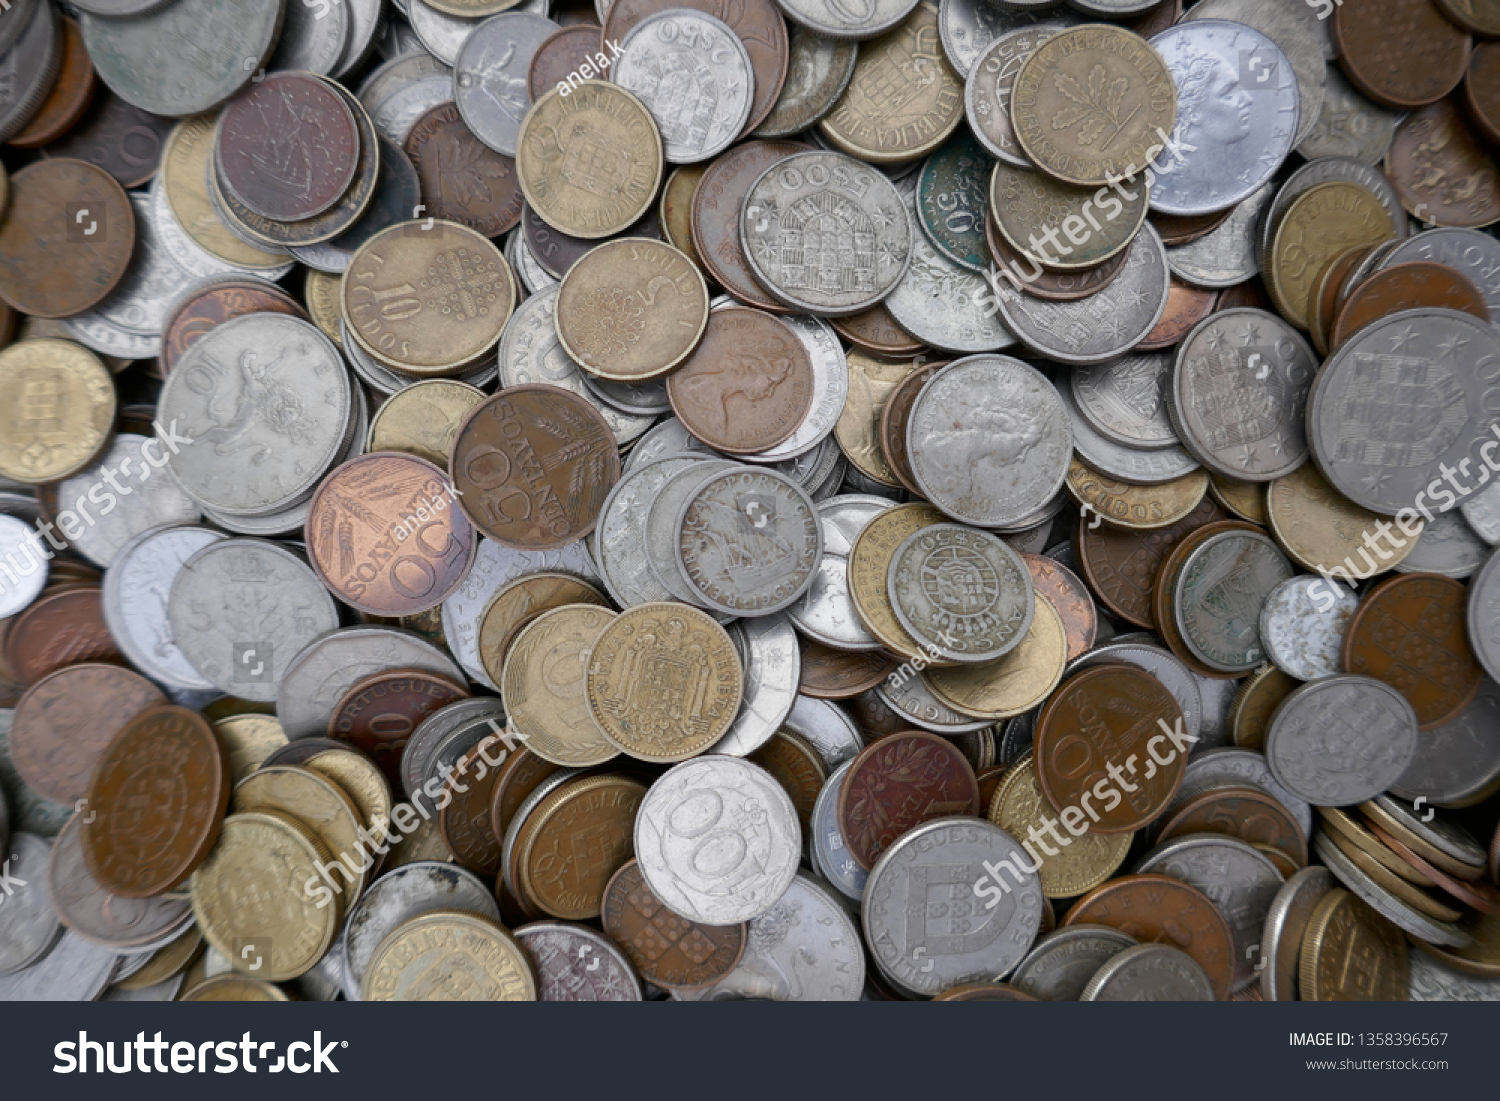 Money Coins Collection Old Invalid International Stock Photo (Edit